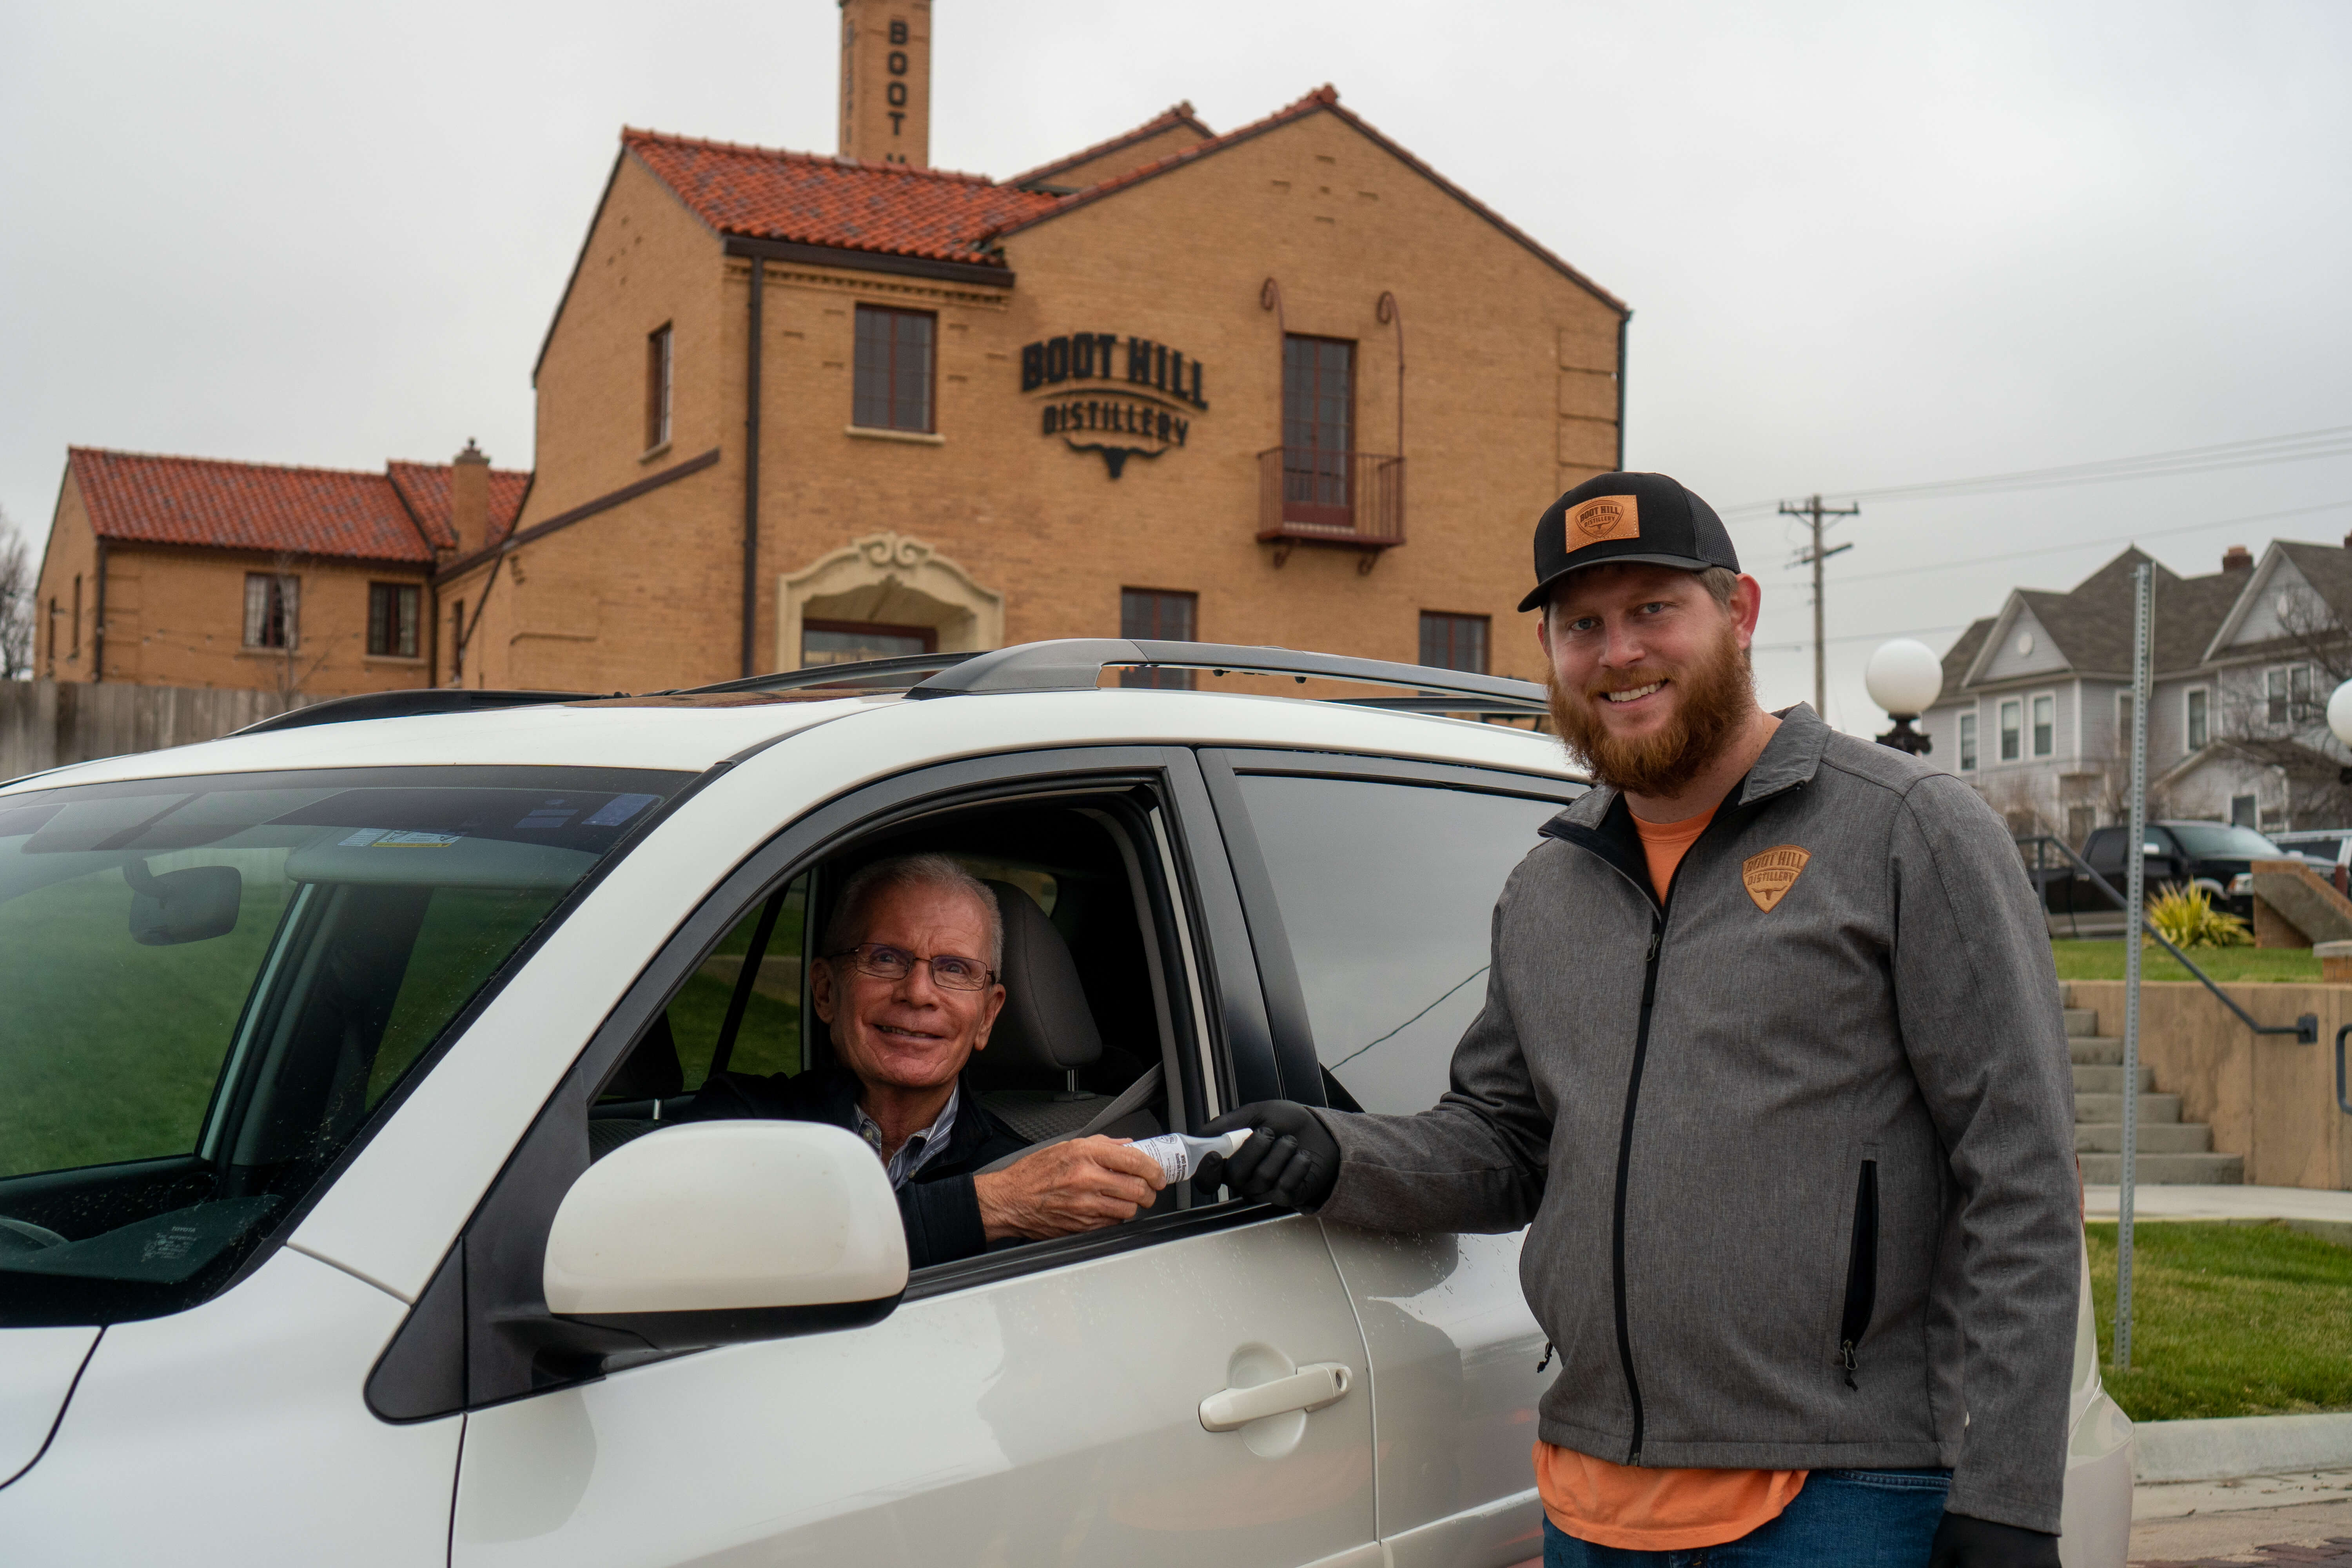 Hayes, Owner of Boot Hill Distillery, passes out hand cleanser in front of the distillery